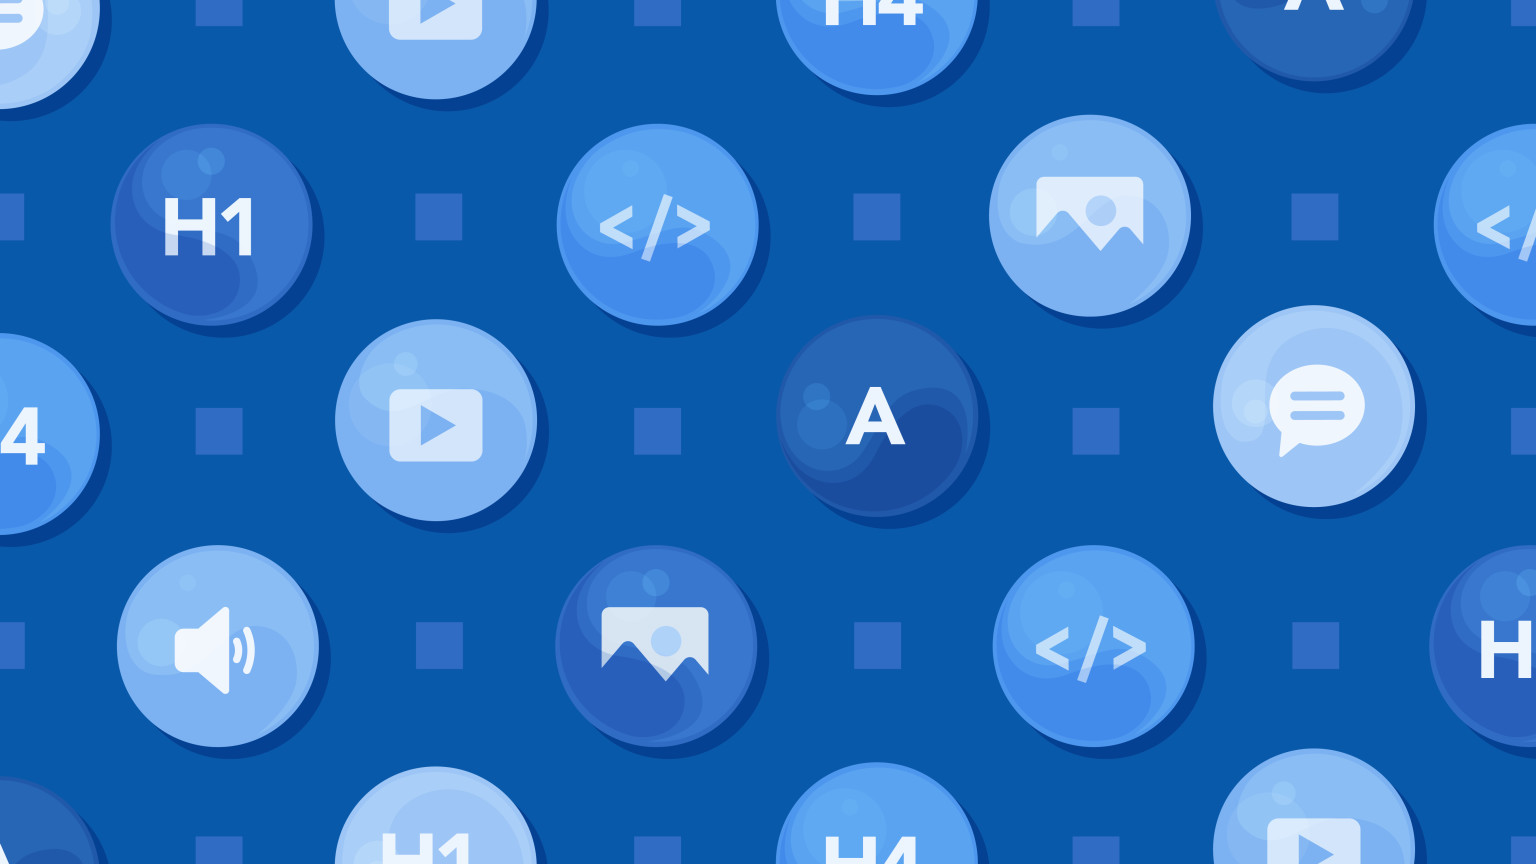 An illustration depicting different icons contained in bubbles in a pattern.